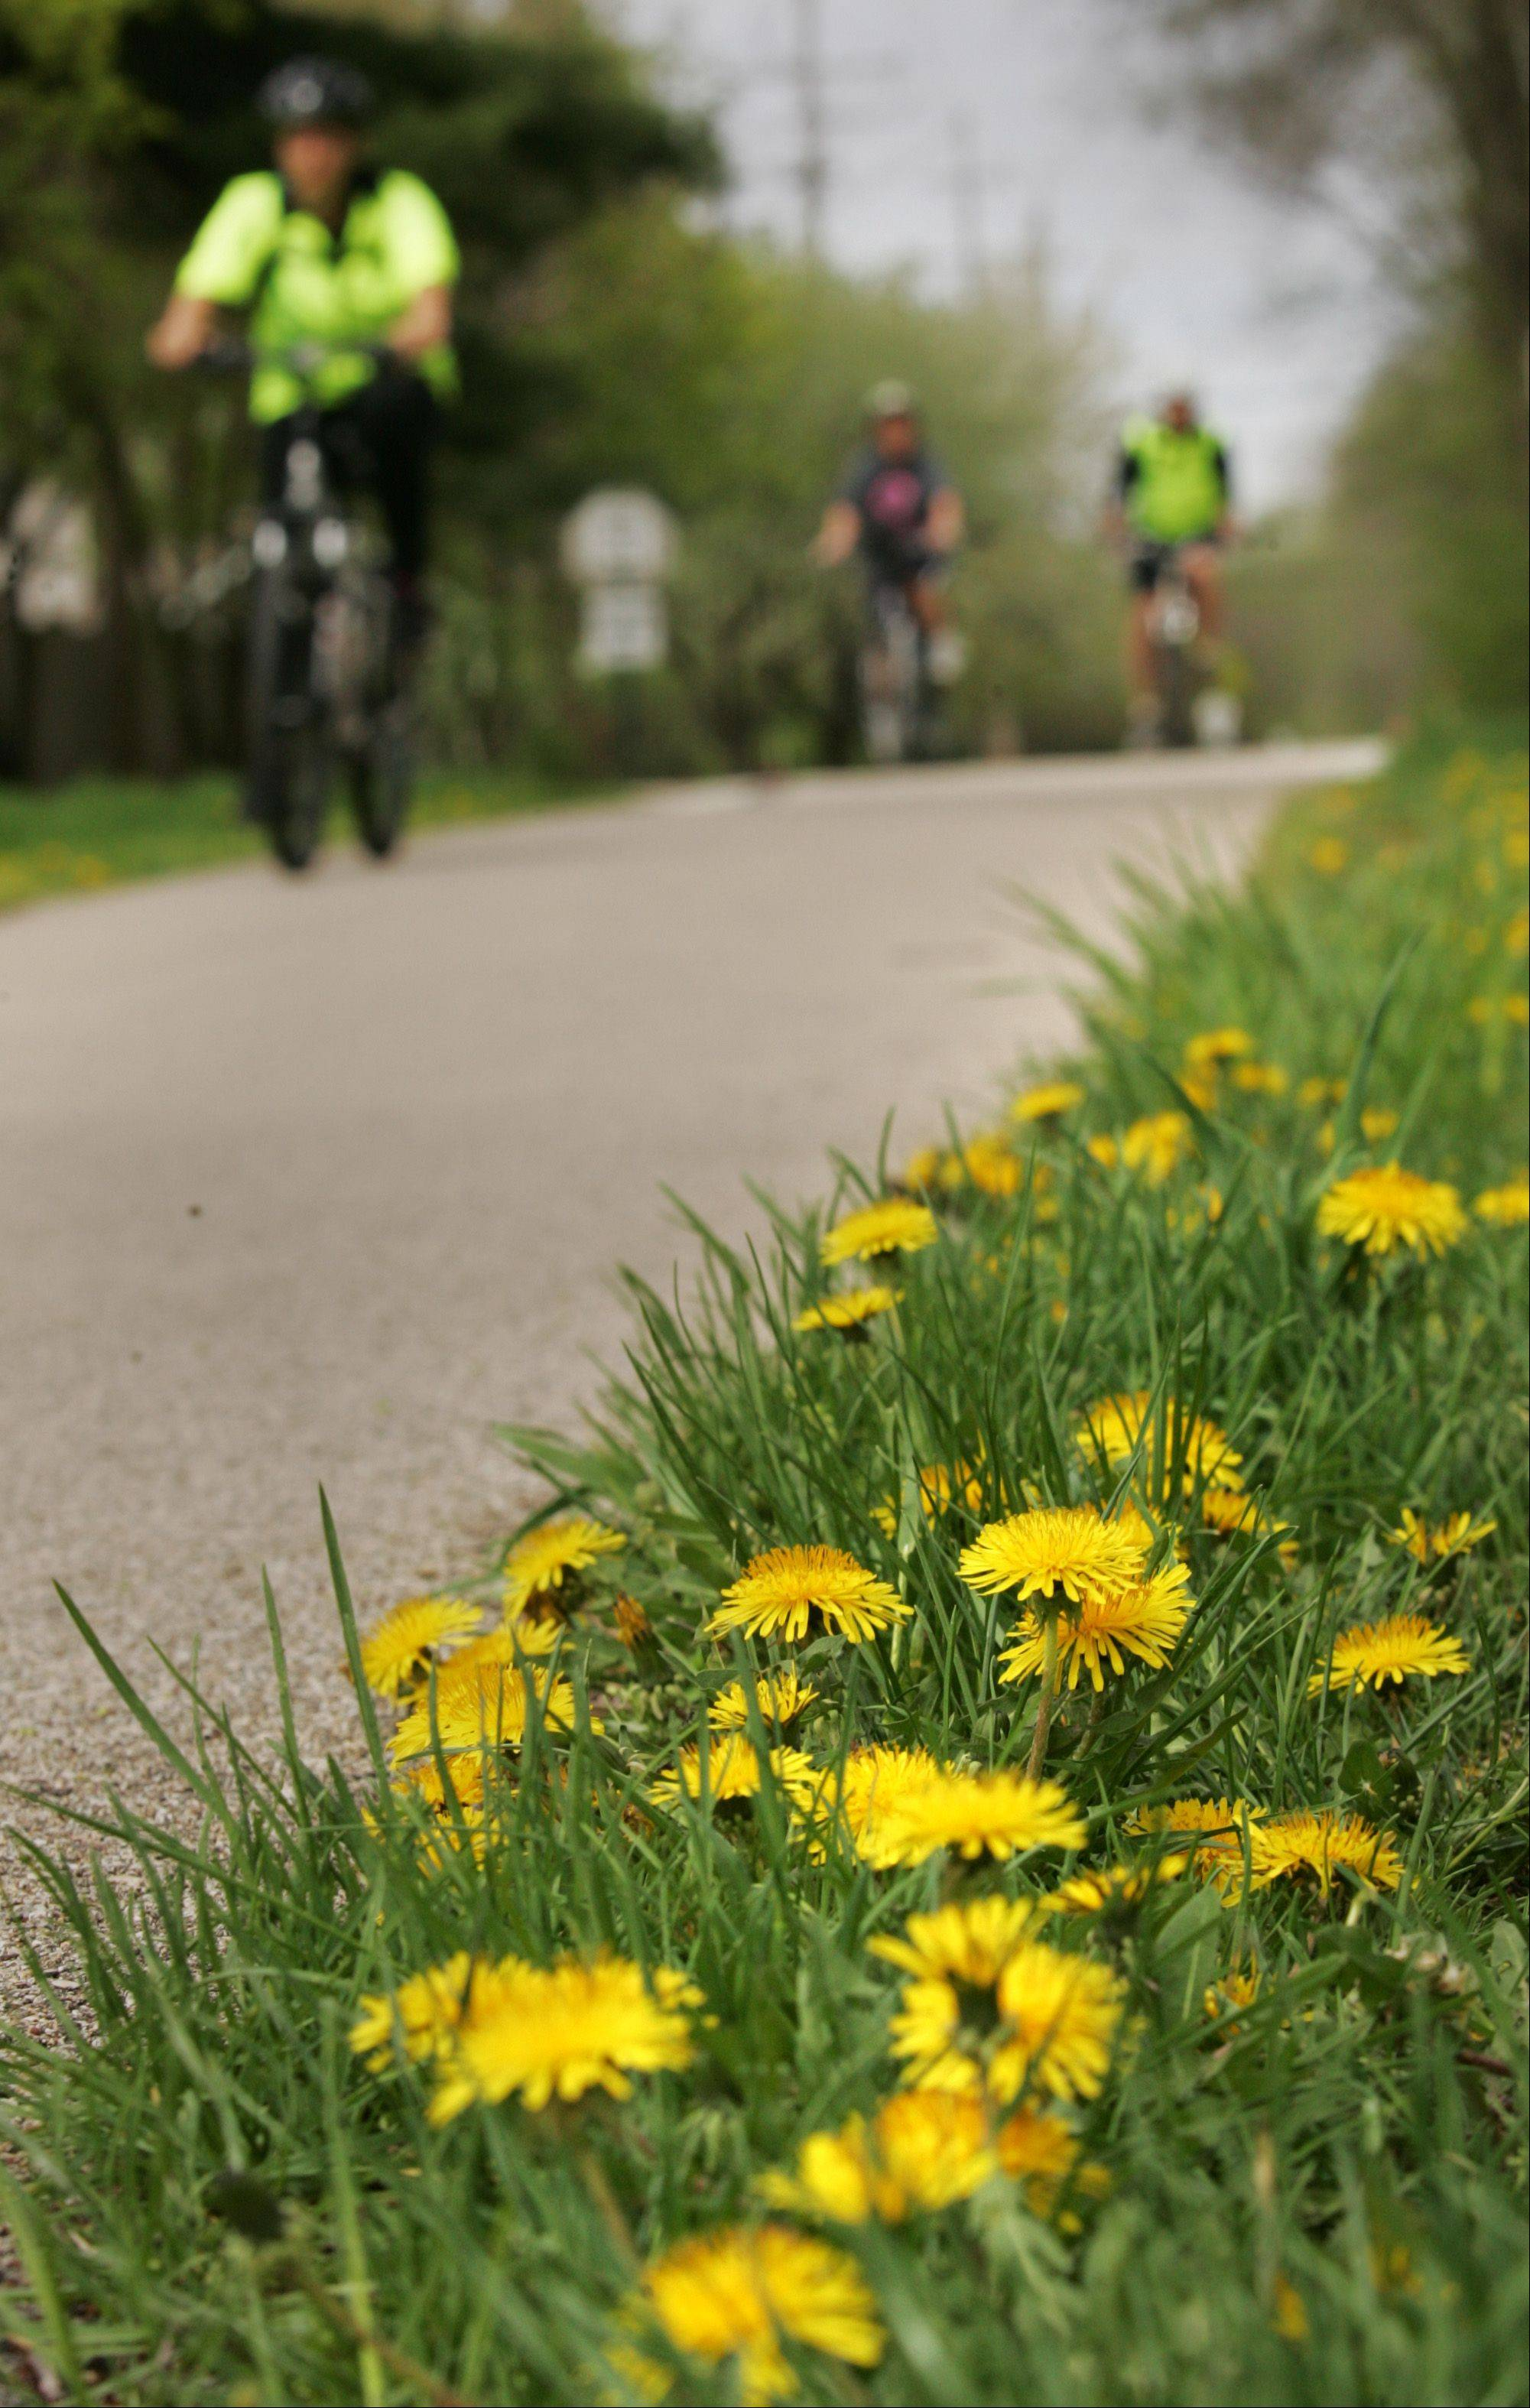 Cyclists pedal the Fox River Trail Monday morning in East Dundee, alongside scores of dandelions which have sprung this spring.